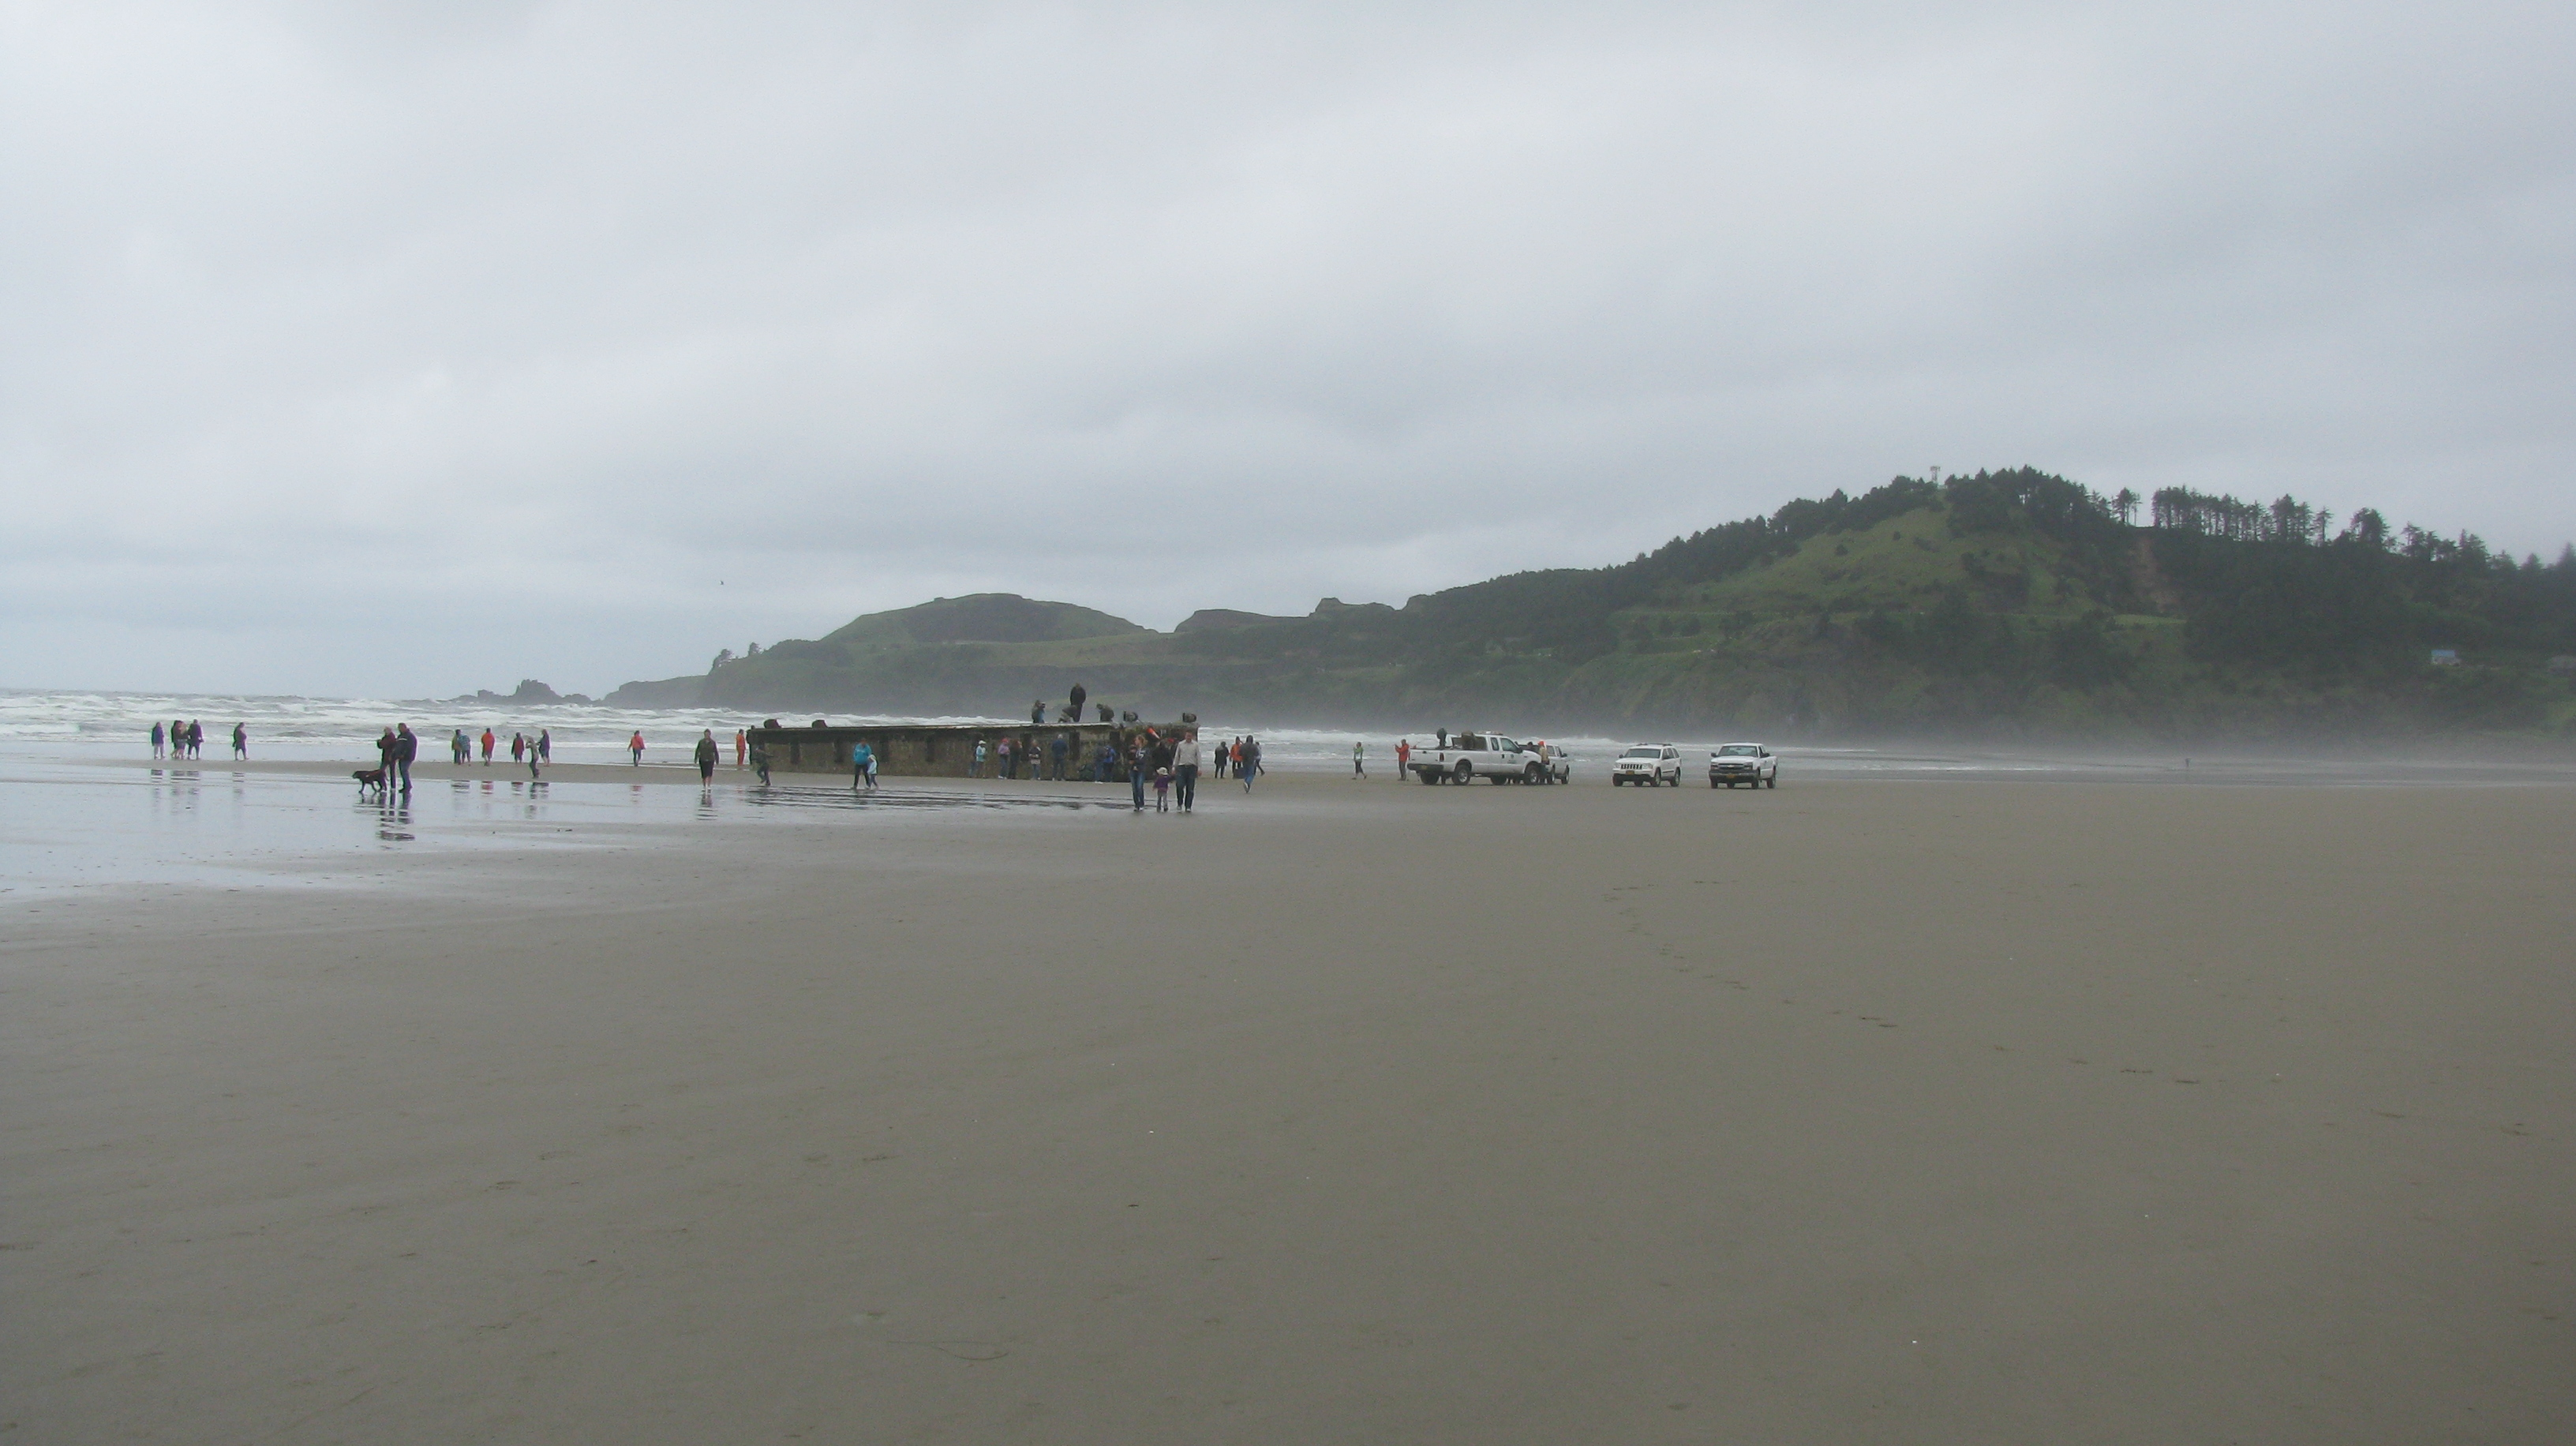 Dock debris arrives in Oregon  from Japan